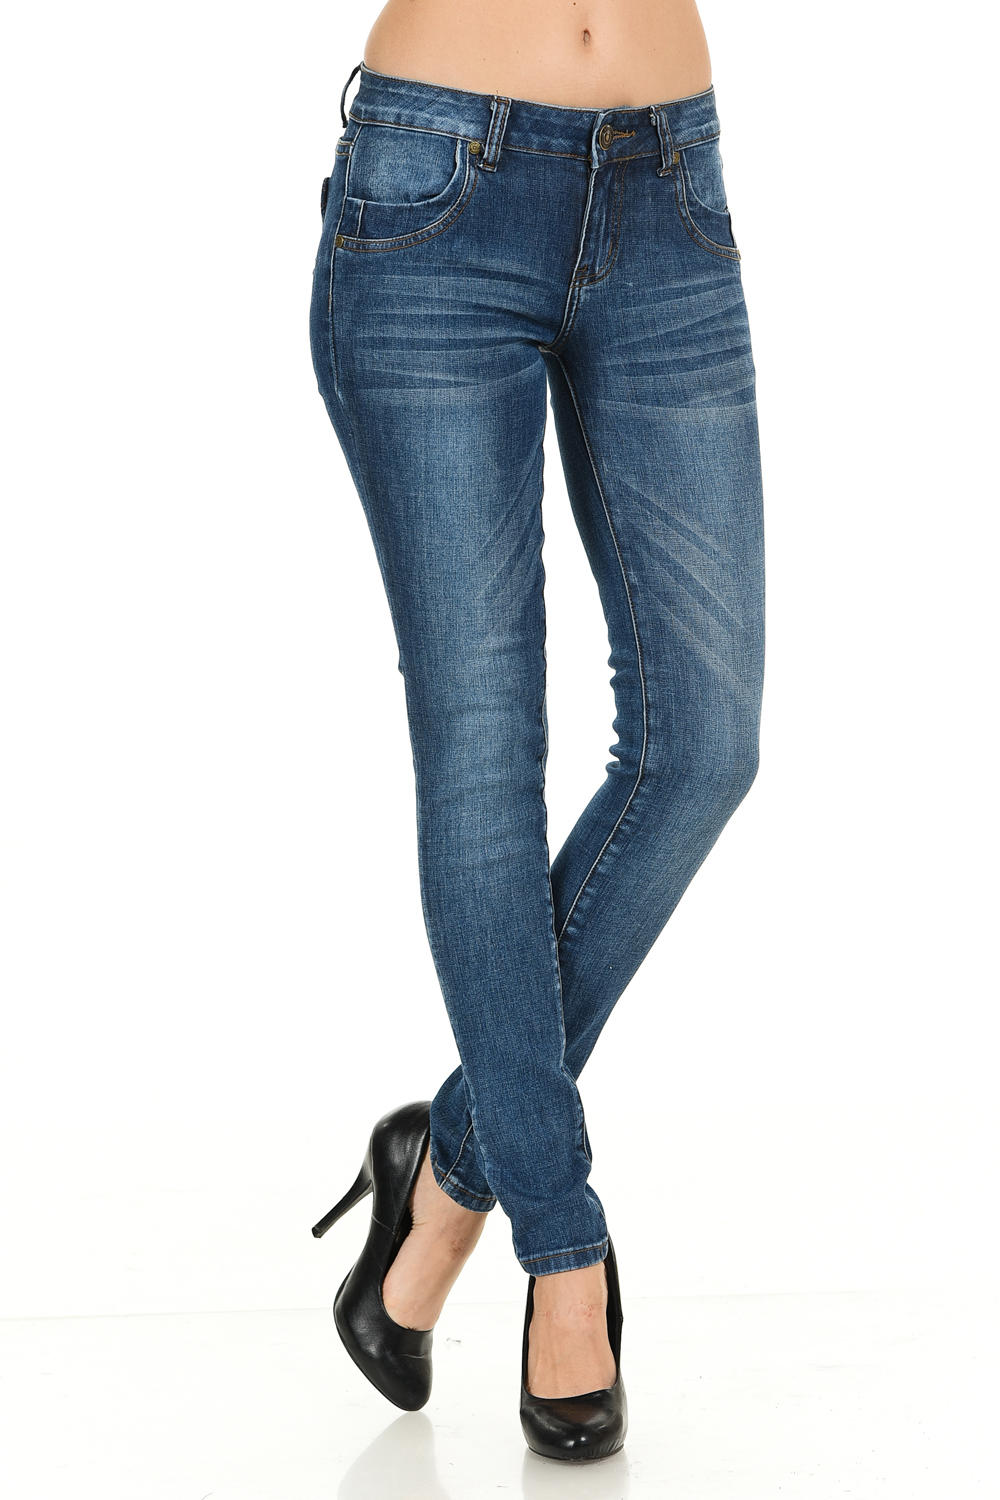 Sweet Look Premium Edition Women's Jeans - Push Up - Style X45